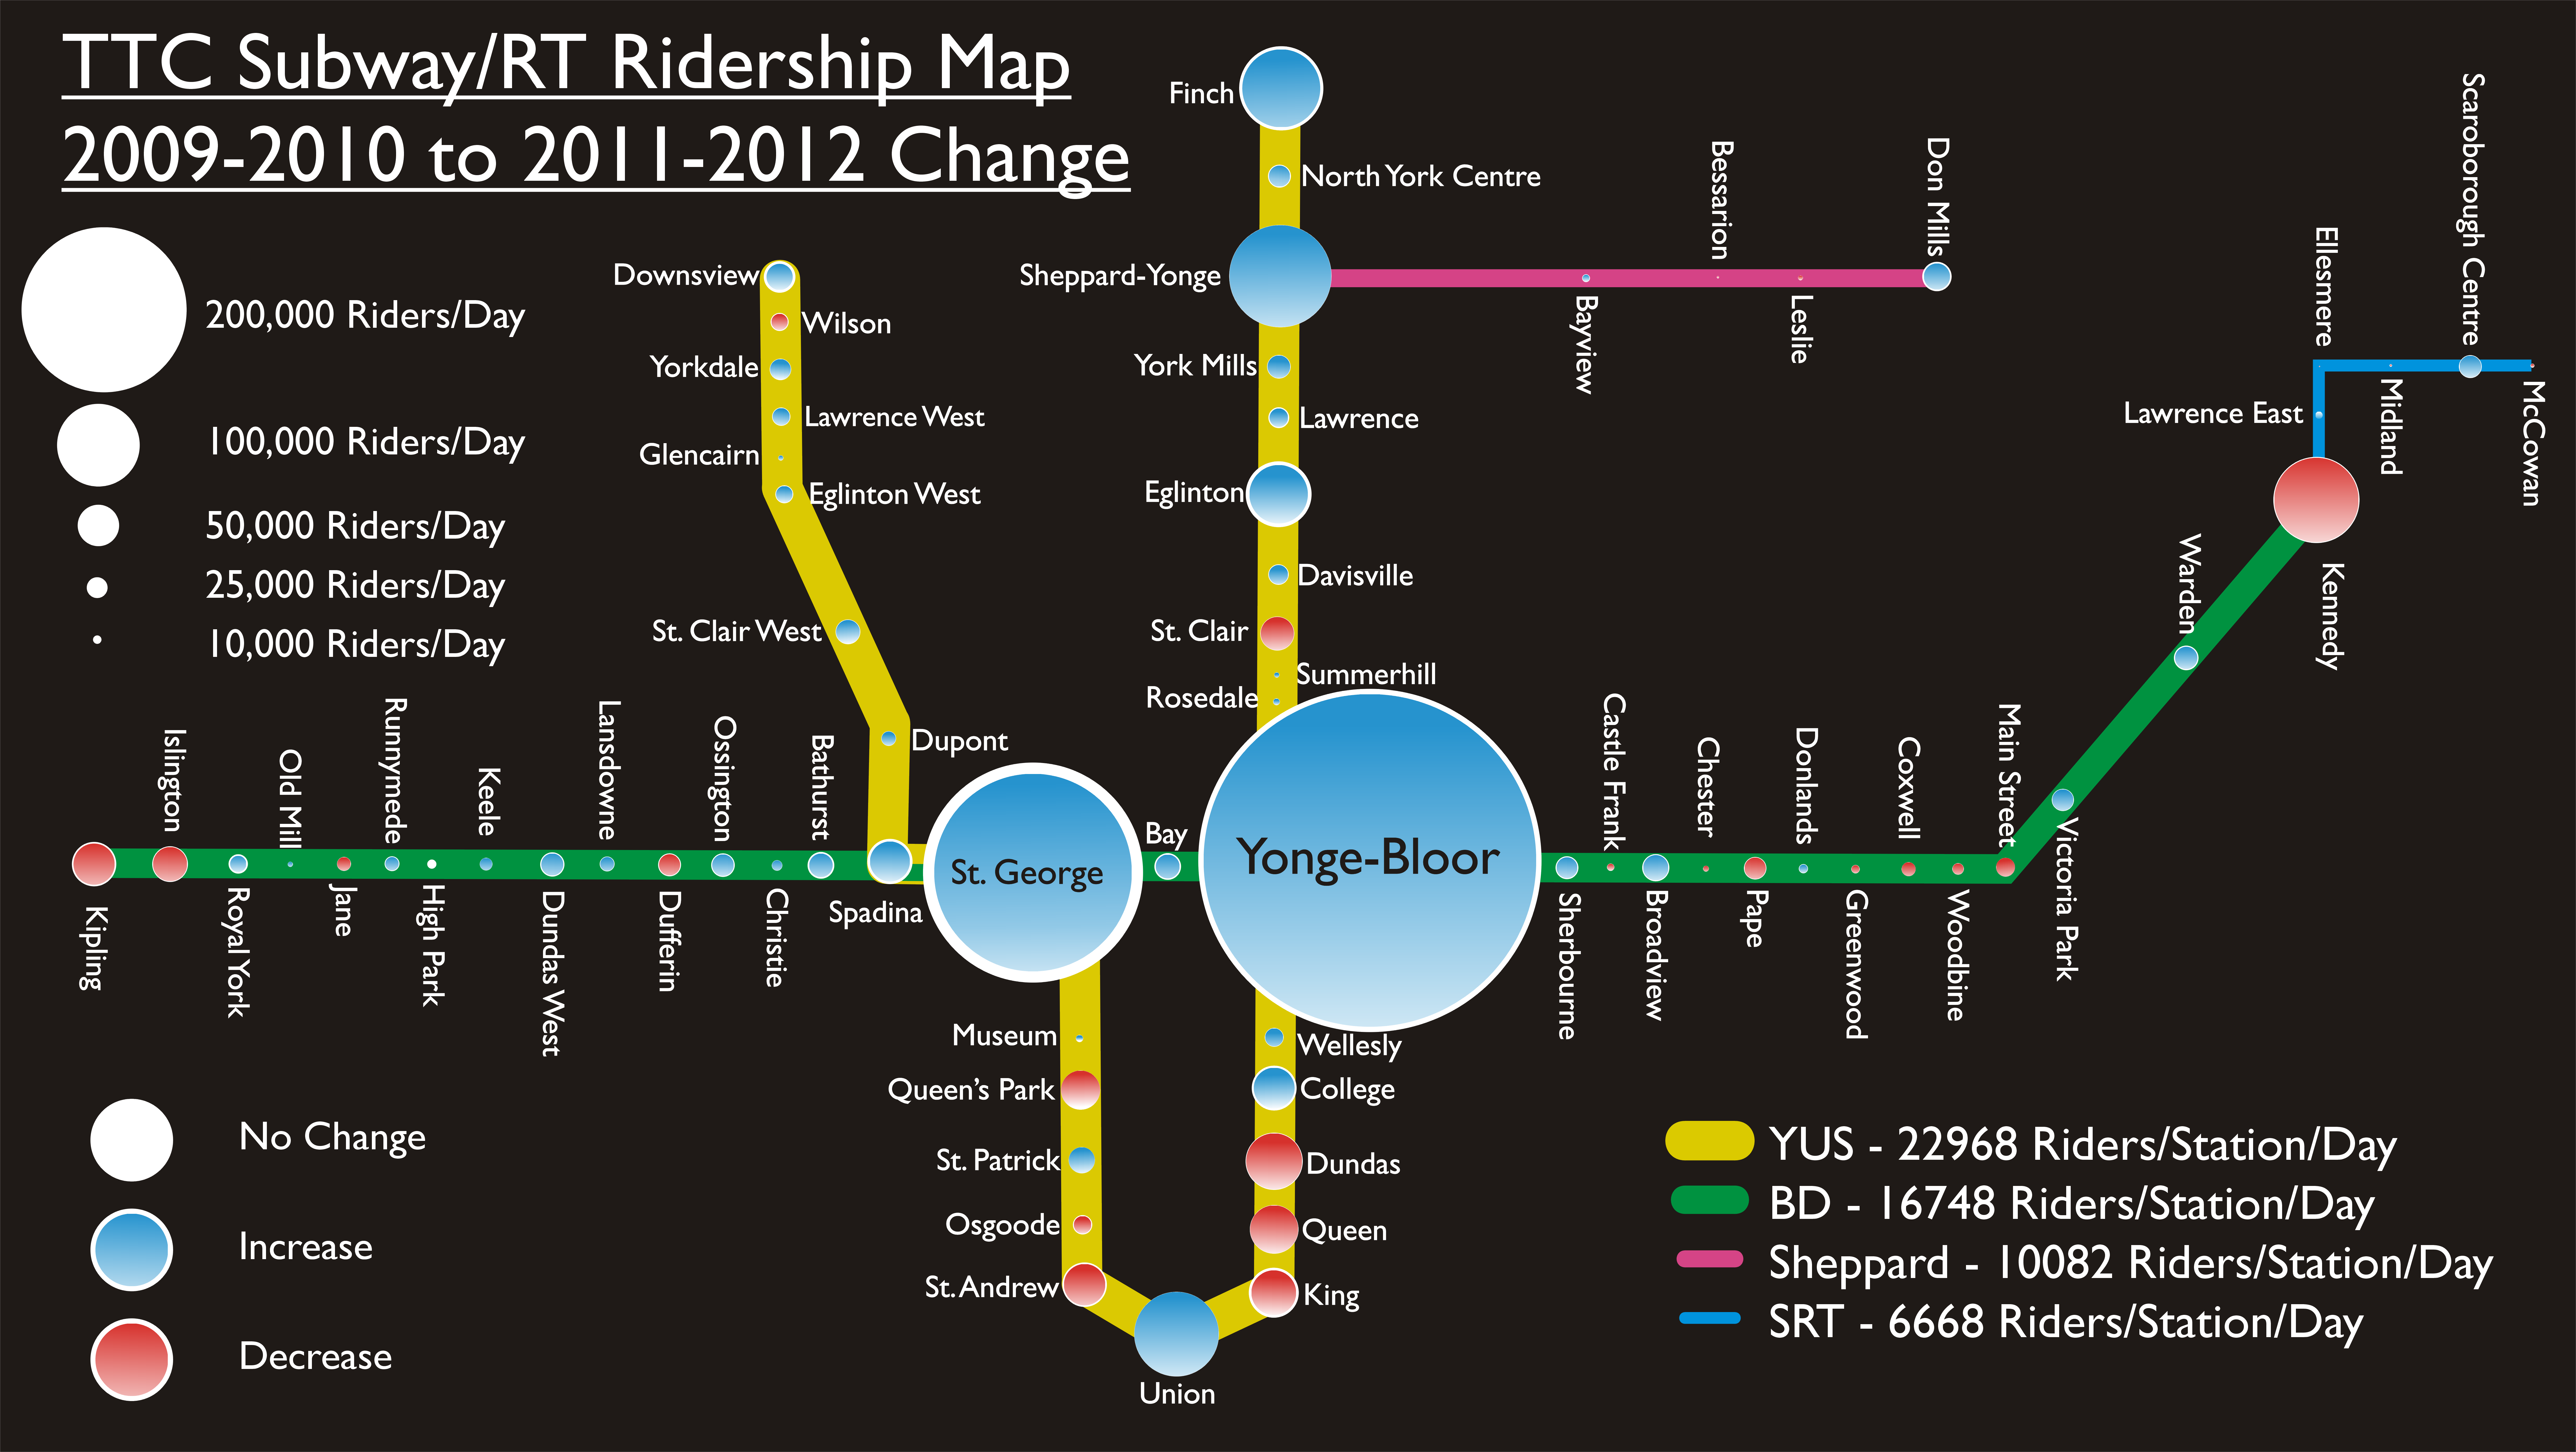 Downsview Subway Station Map